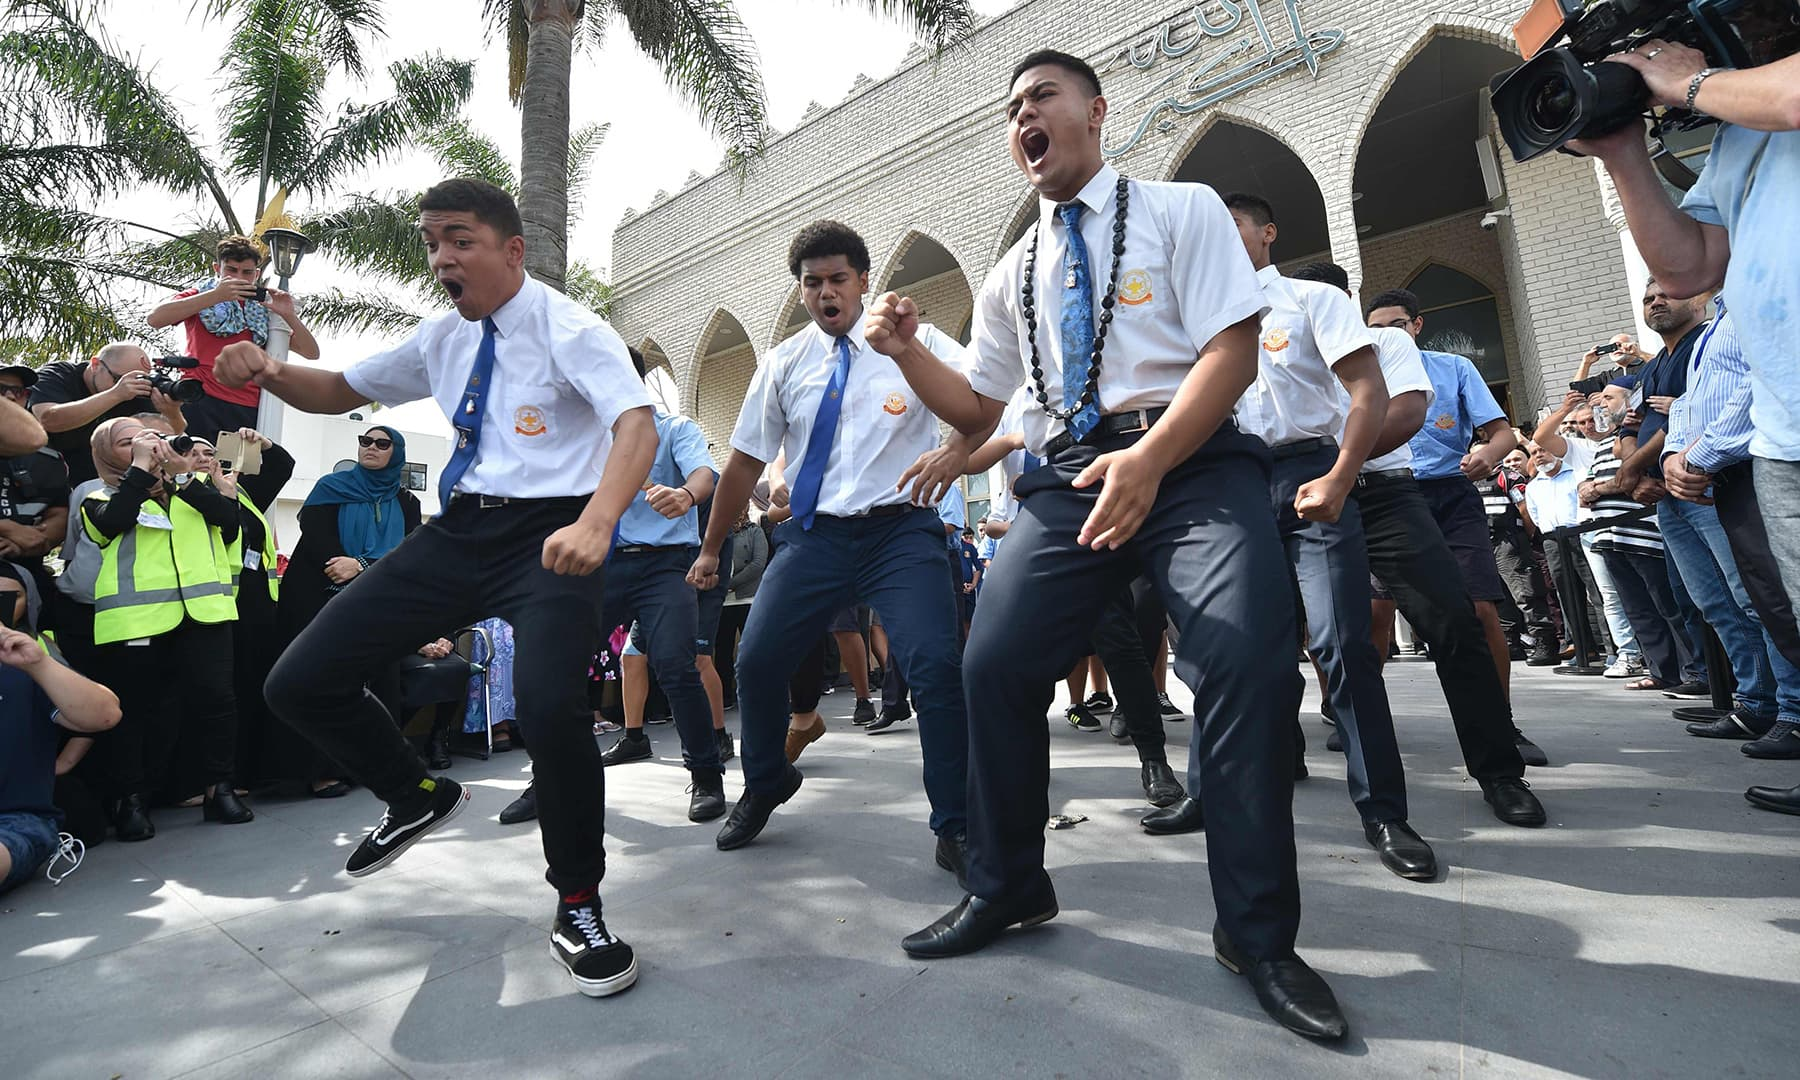 Maori schoolboys perform a Haka after Friday prayers at Lakemba Mosque in Sydney on March 22, one week after the mass shooting attacks at two mosques in Christchurch. — AFP